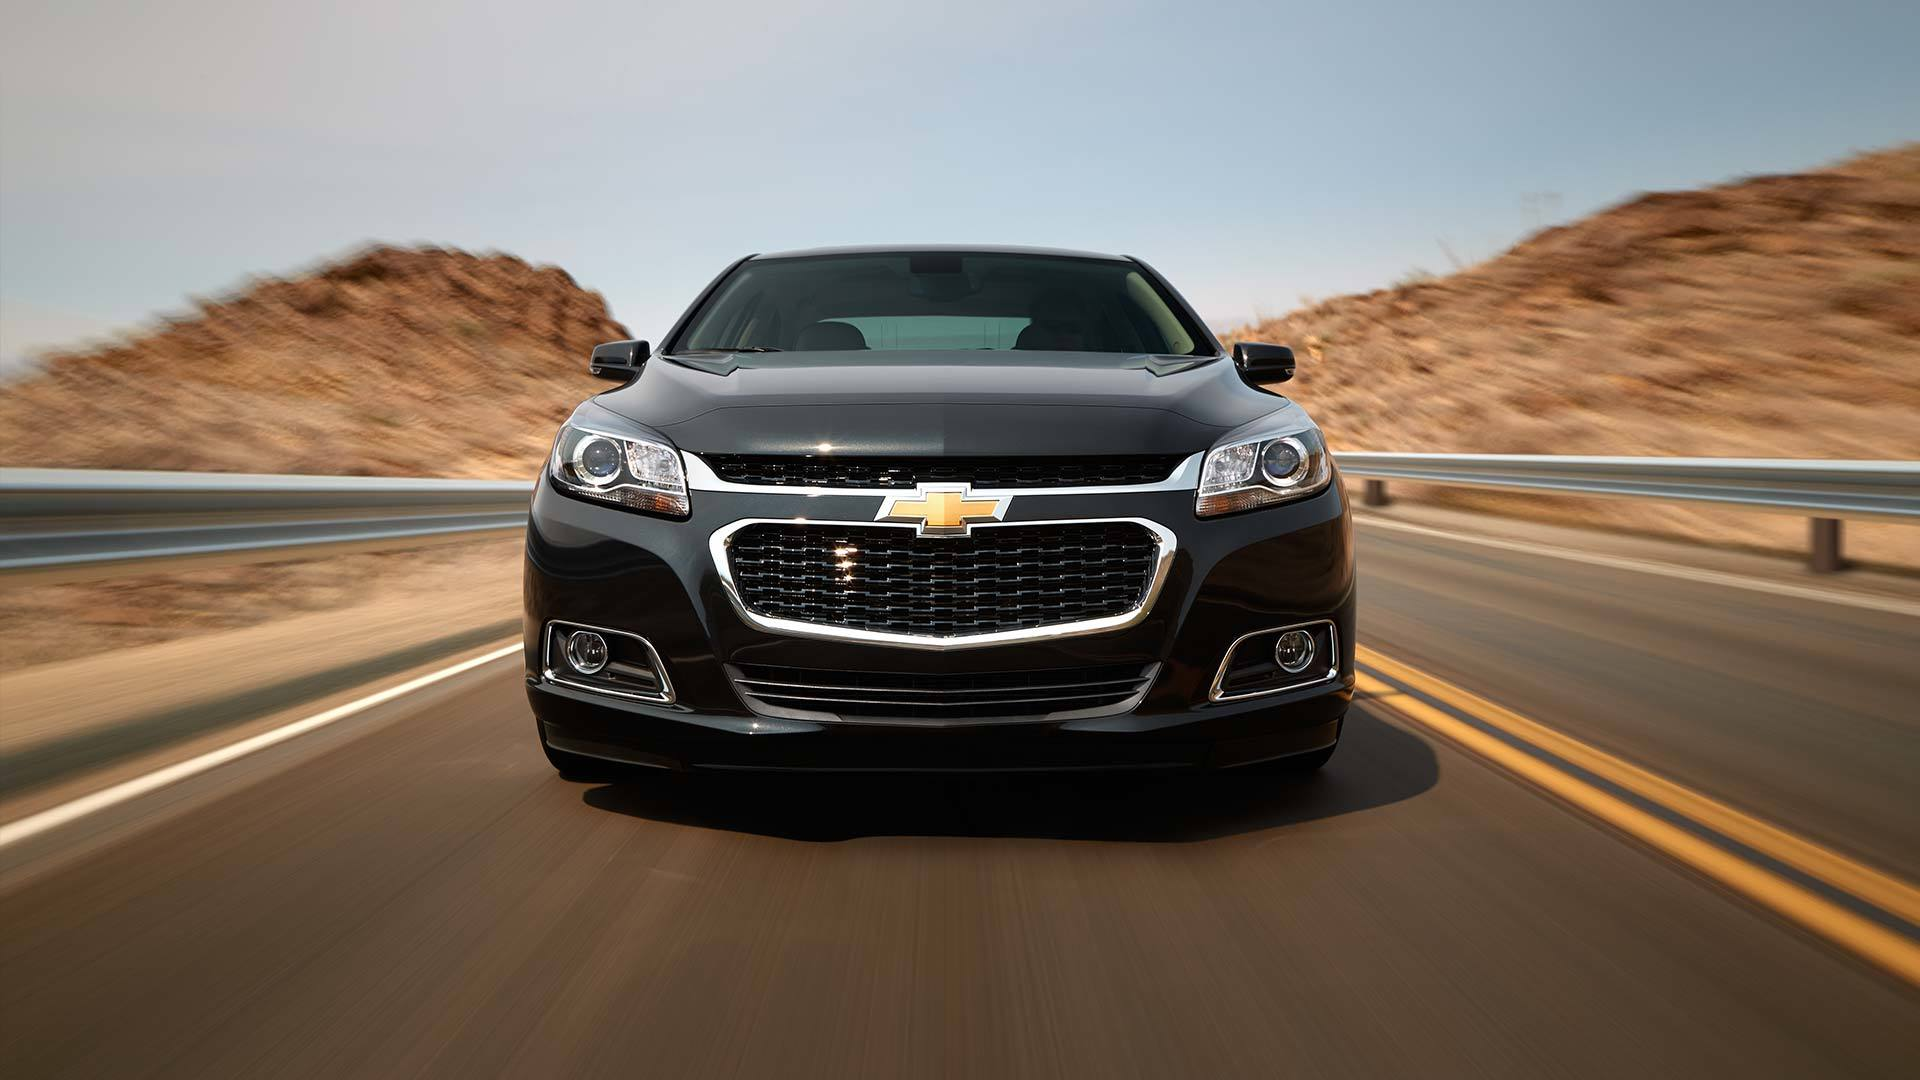 2015 Chevy Malibu exterior front